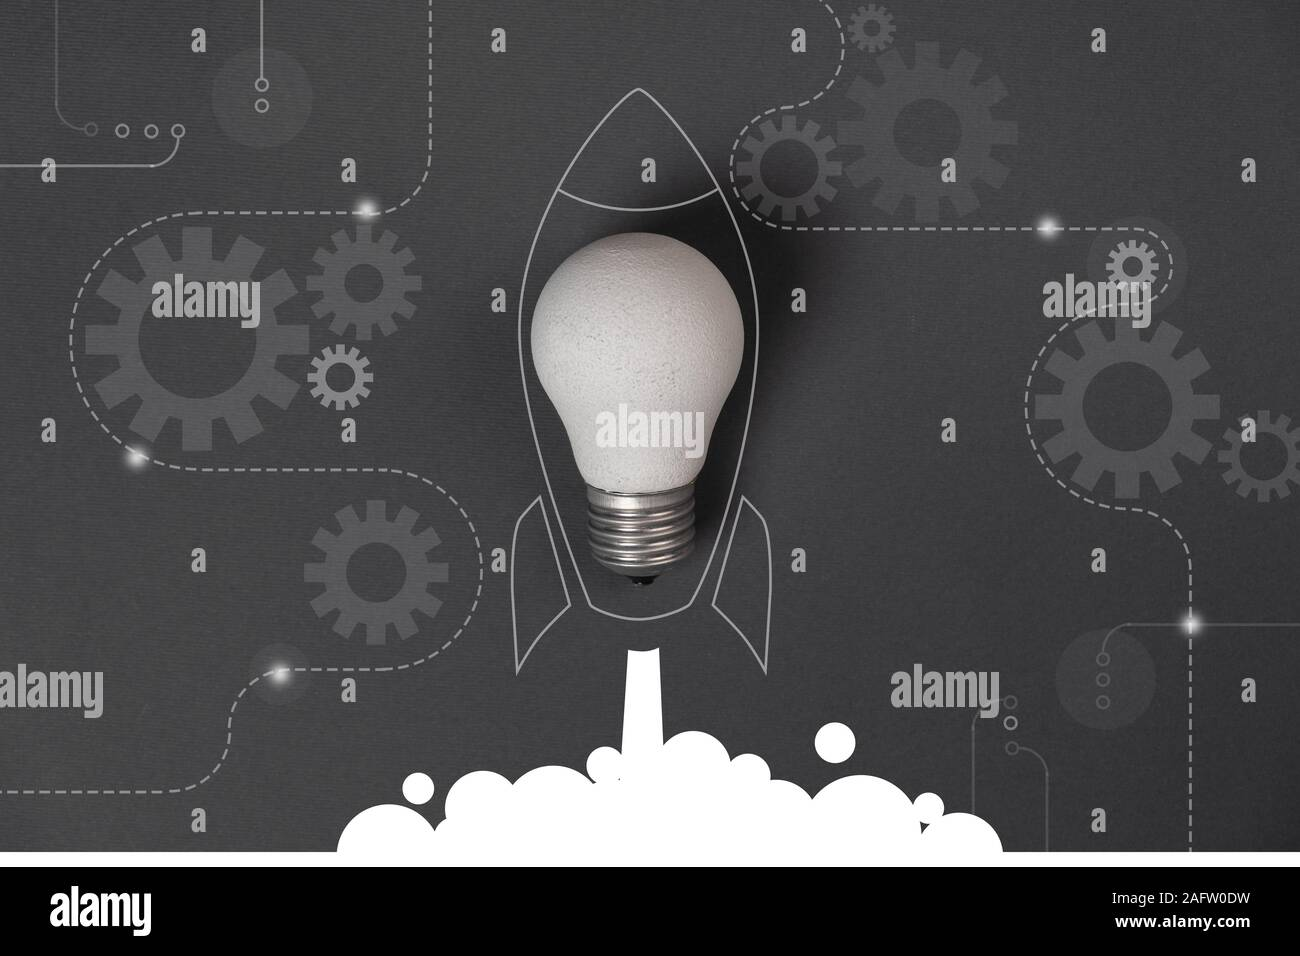 Creative idea concept with crumpled office paper, white light bulb and network connection on virtual interface background, innovative technology in sc Stock Photo